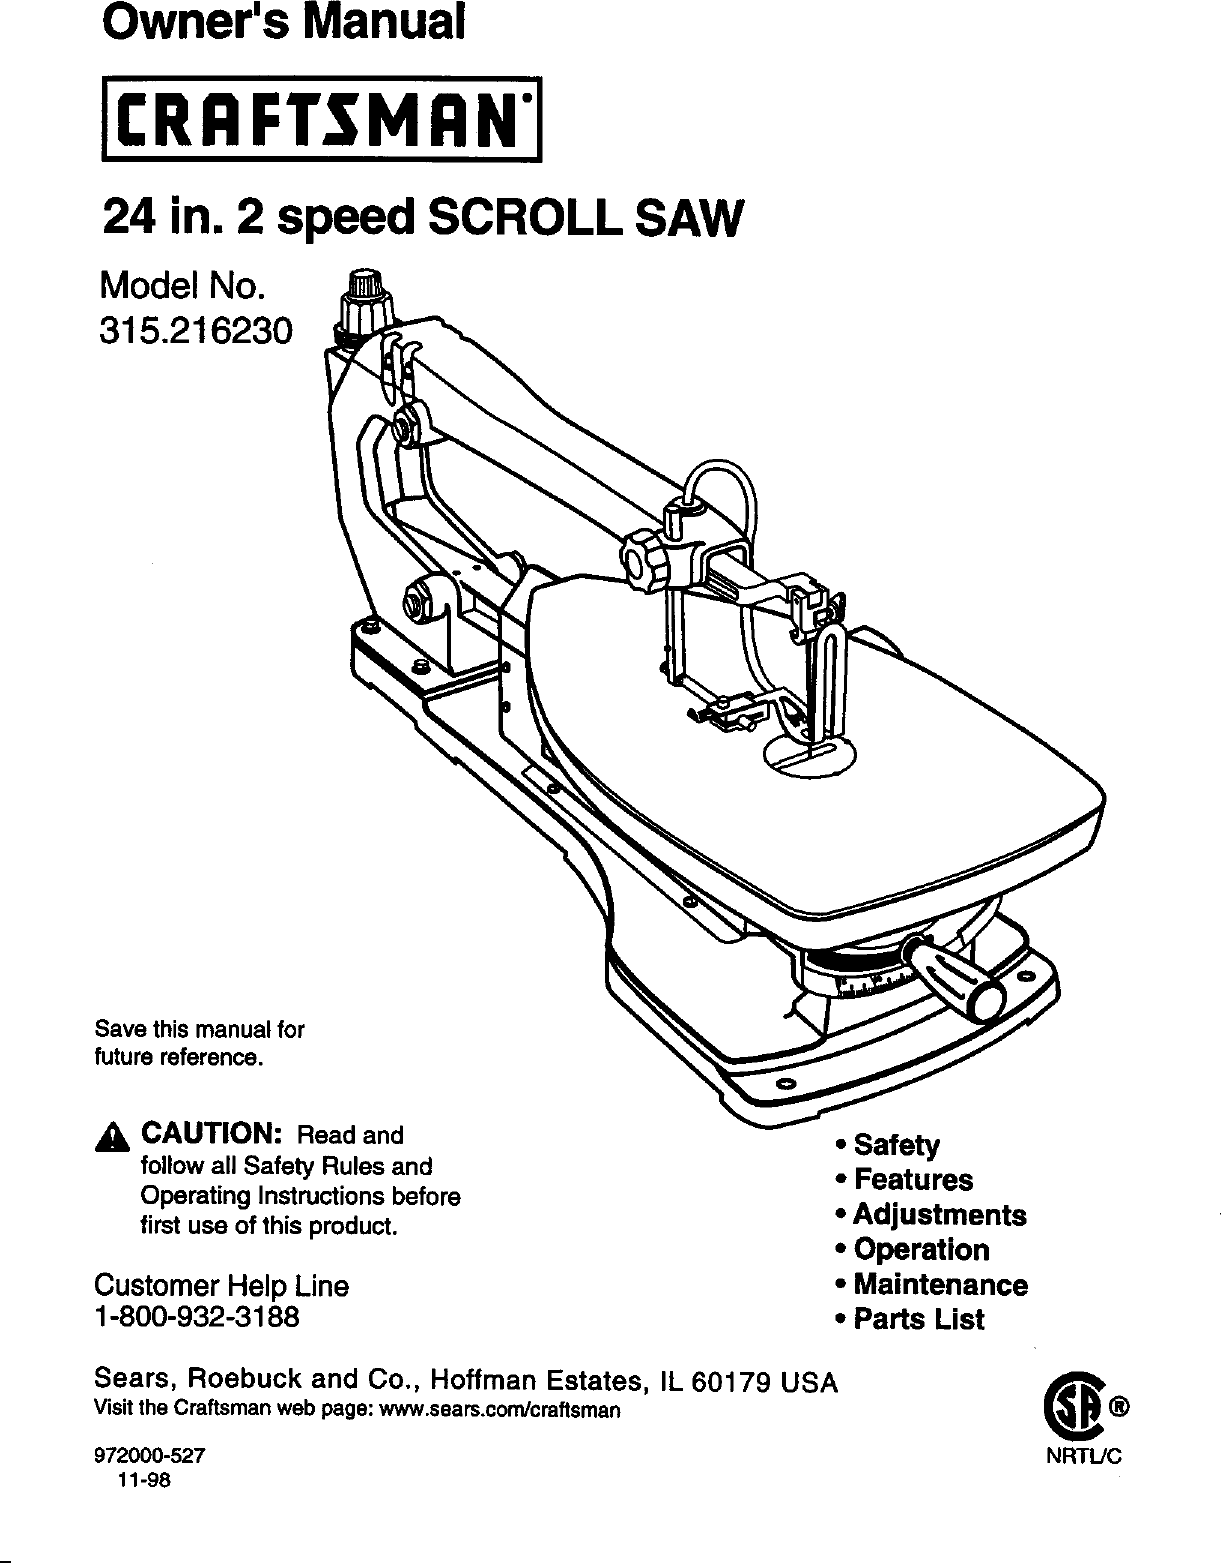 Craftsman 315216230 User Manual 24 IN. 2 SPEED SCROLL SAW